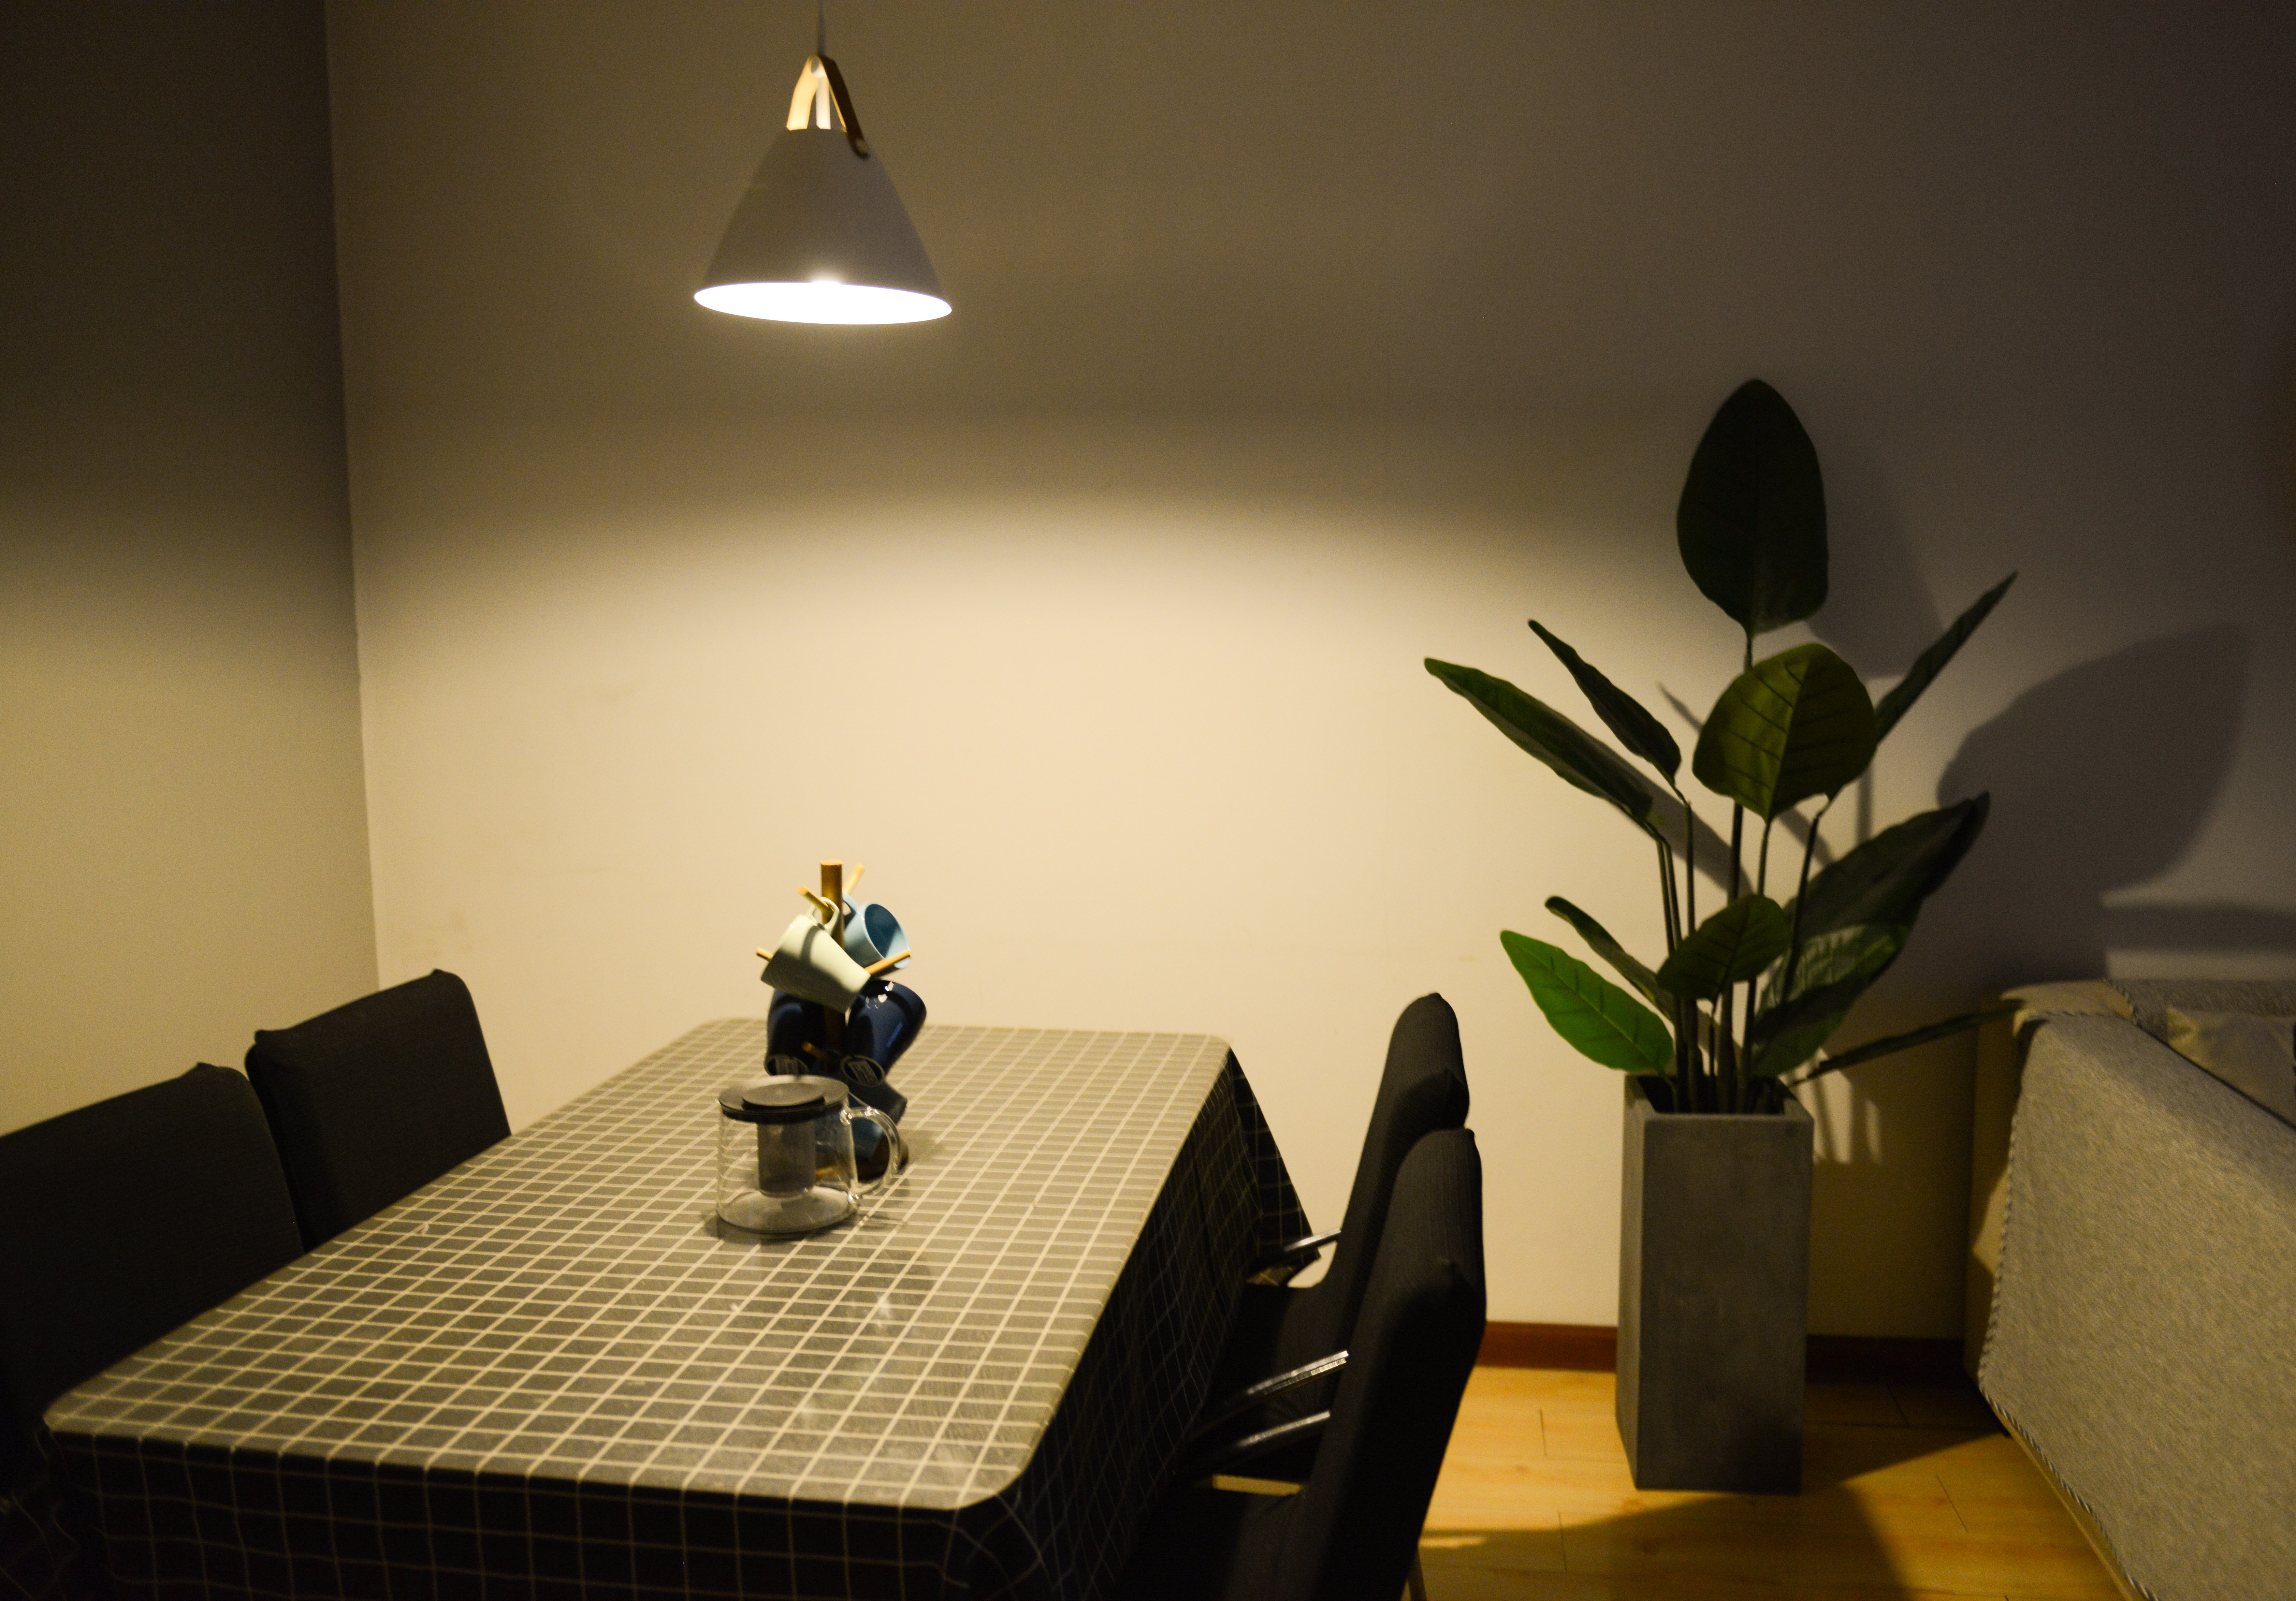 Photo of Dining Table near the Plant, Apartment, Leaves, Vase, Table, HQ Photo